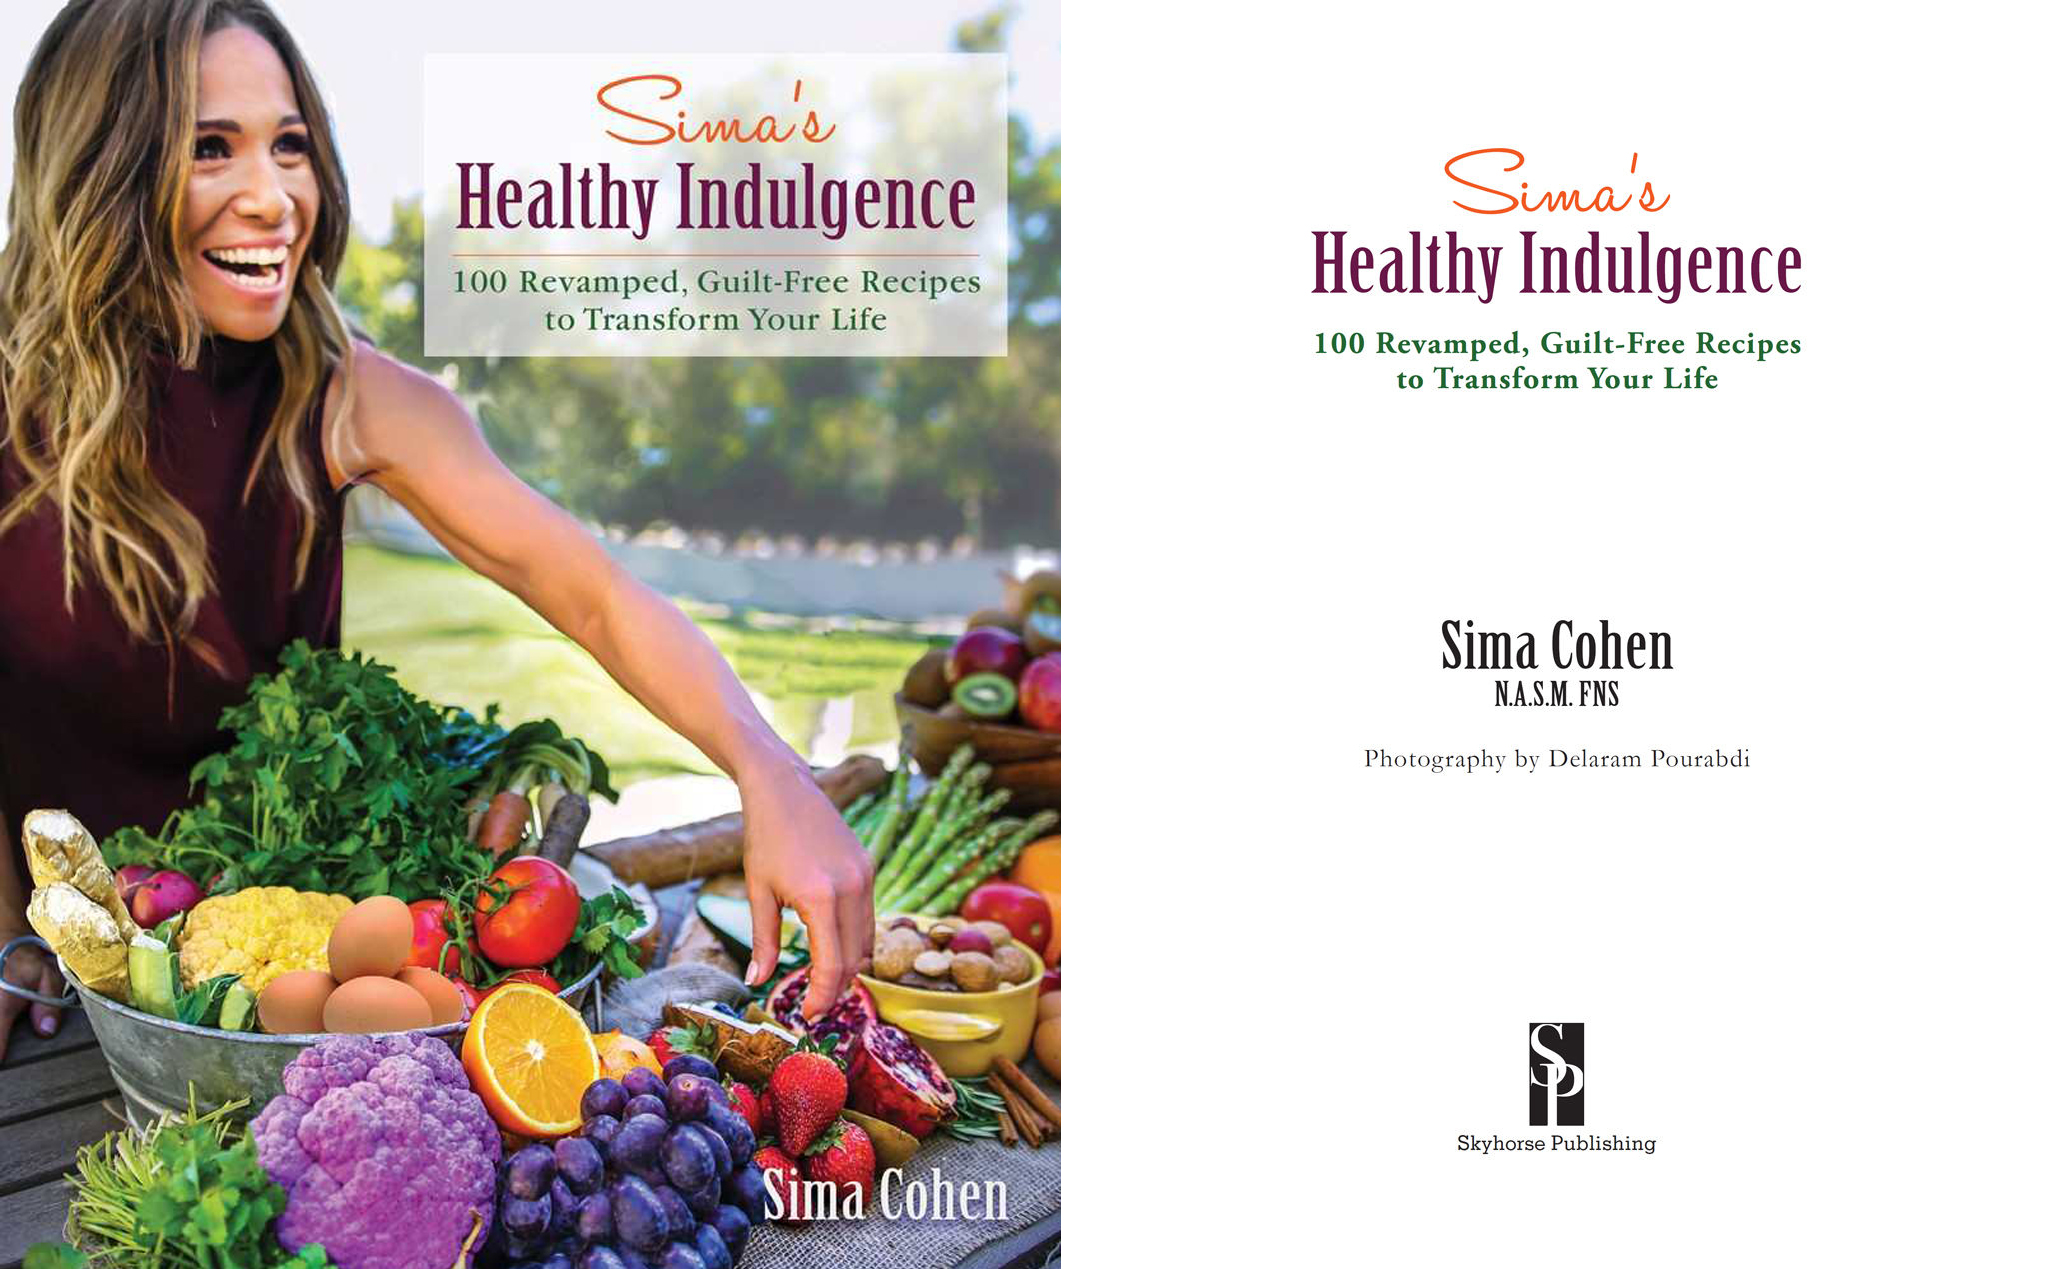 SIMA COHEN's cookbook